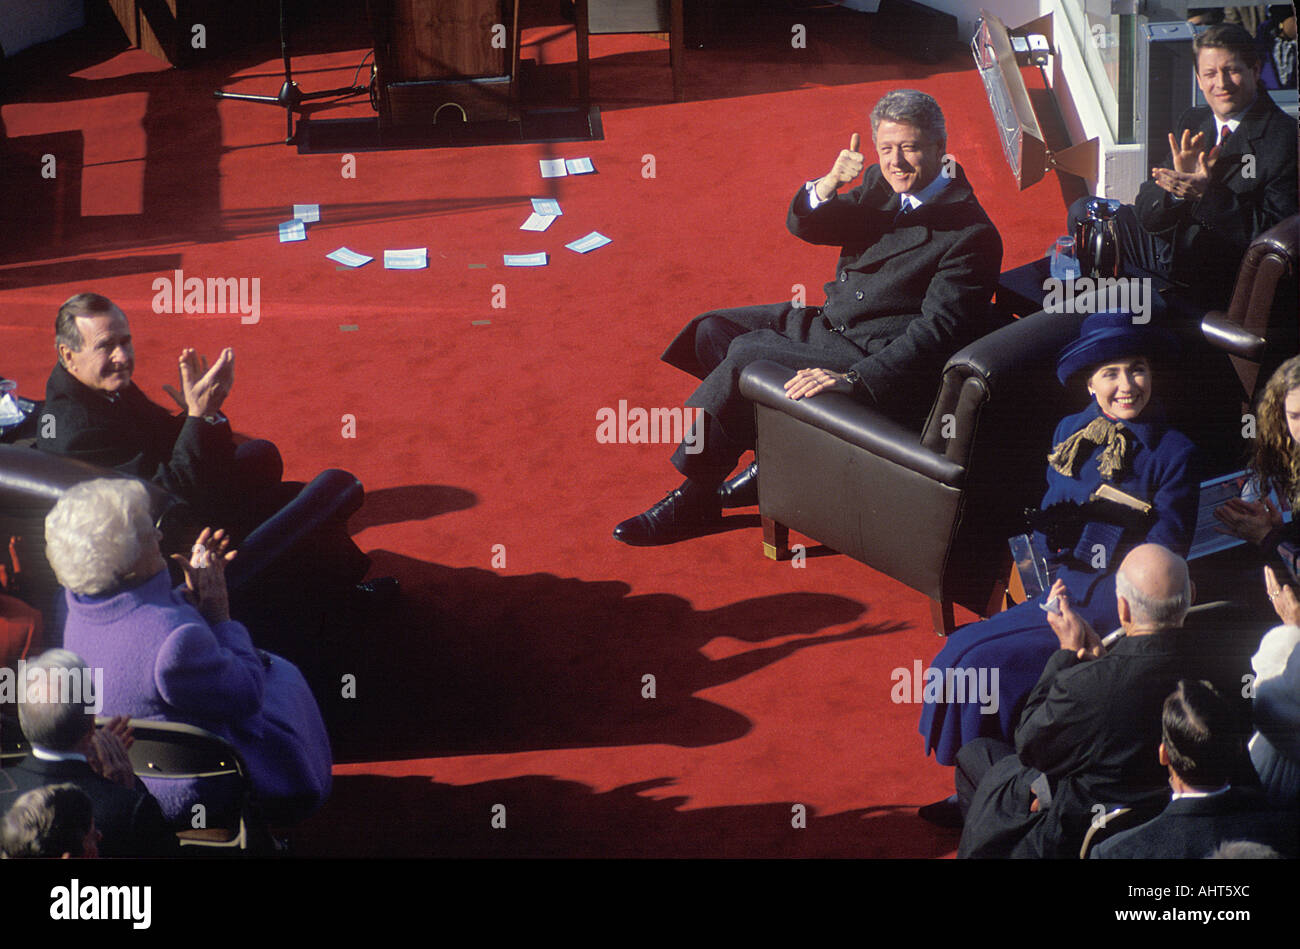 Bill Clinton 42nd President gives the thumbs up on Inauguration Day 1993 Washington DC Stock Photo